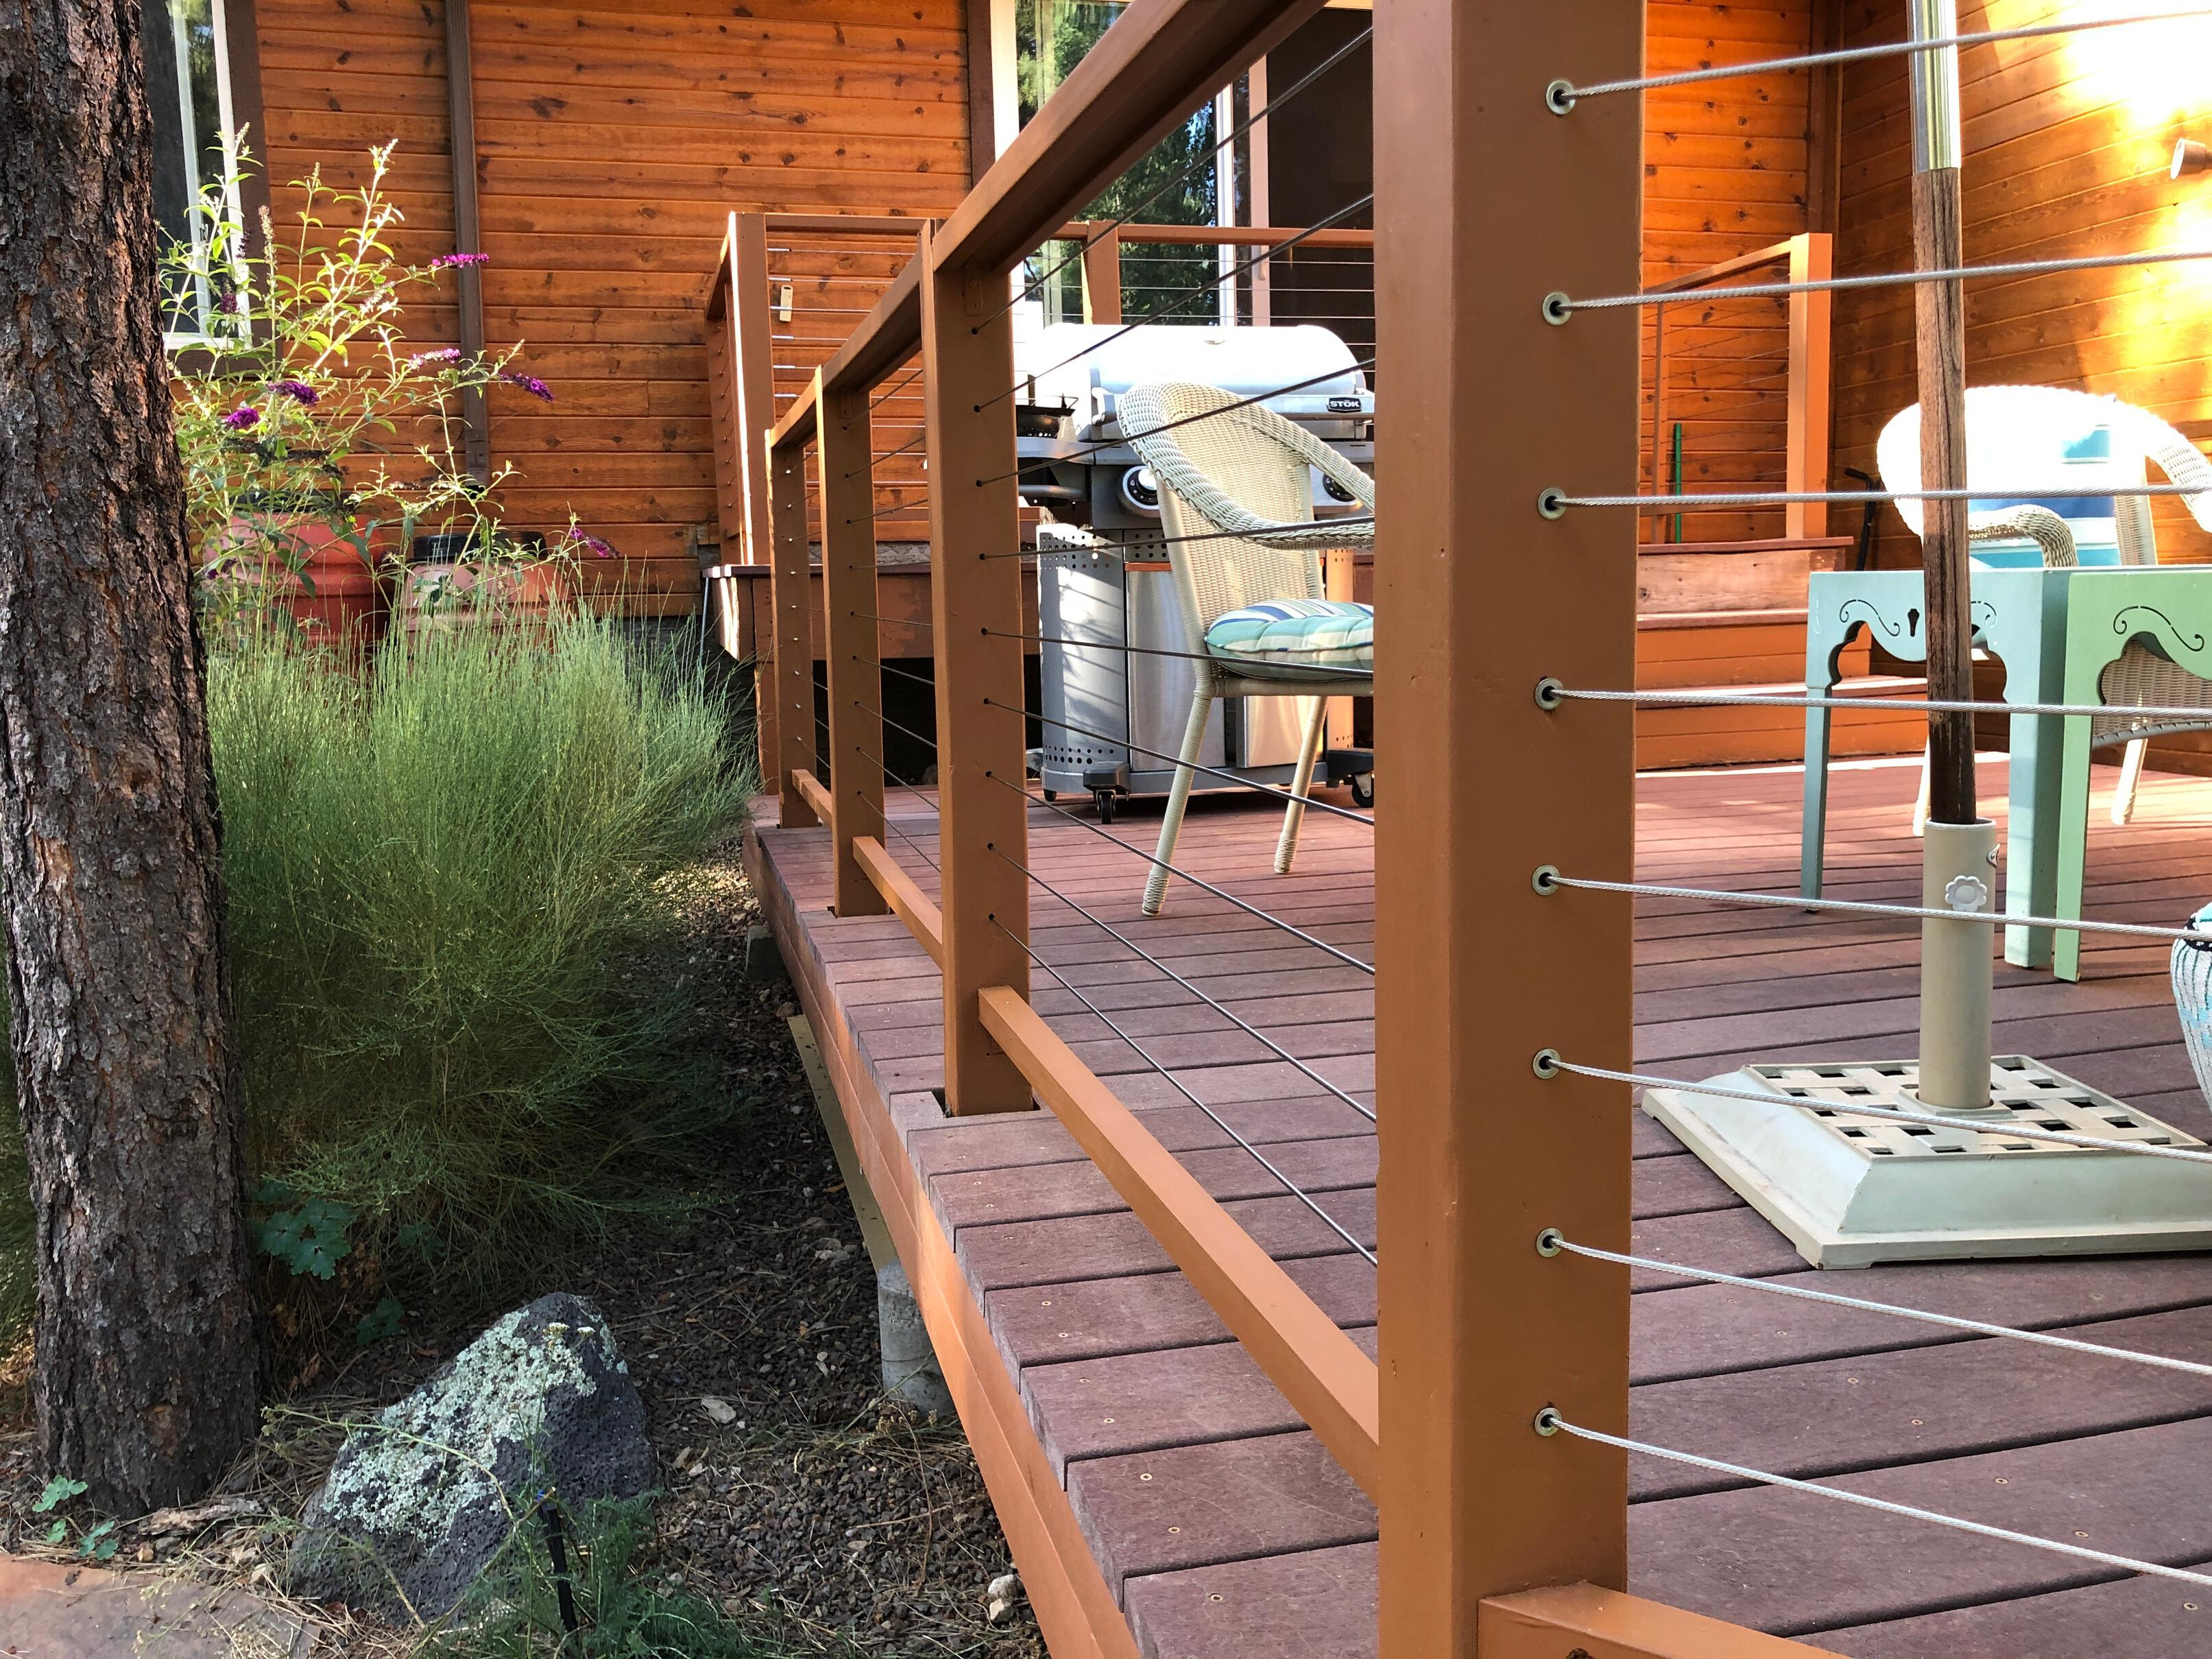 Photo of a deck with steel cable railing